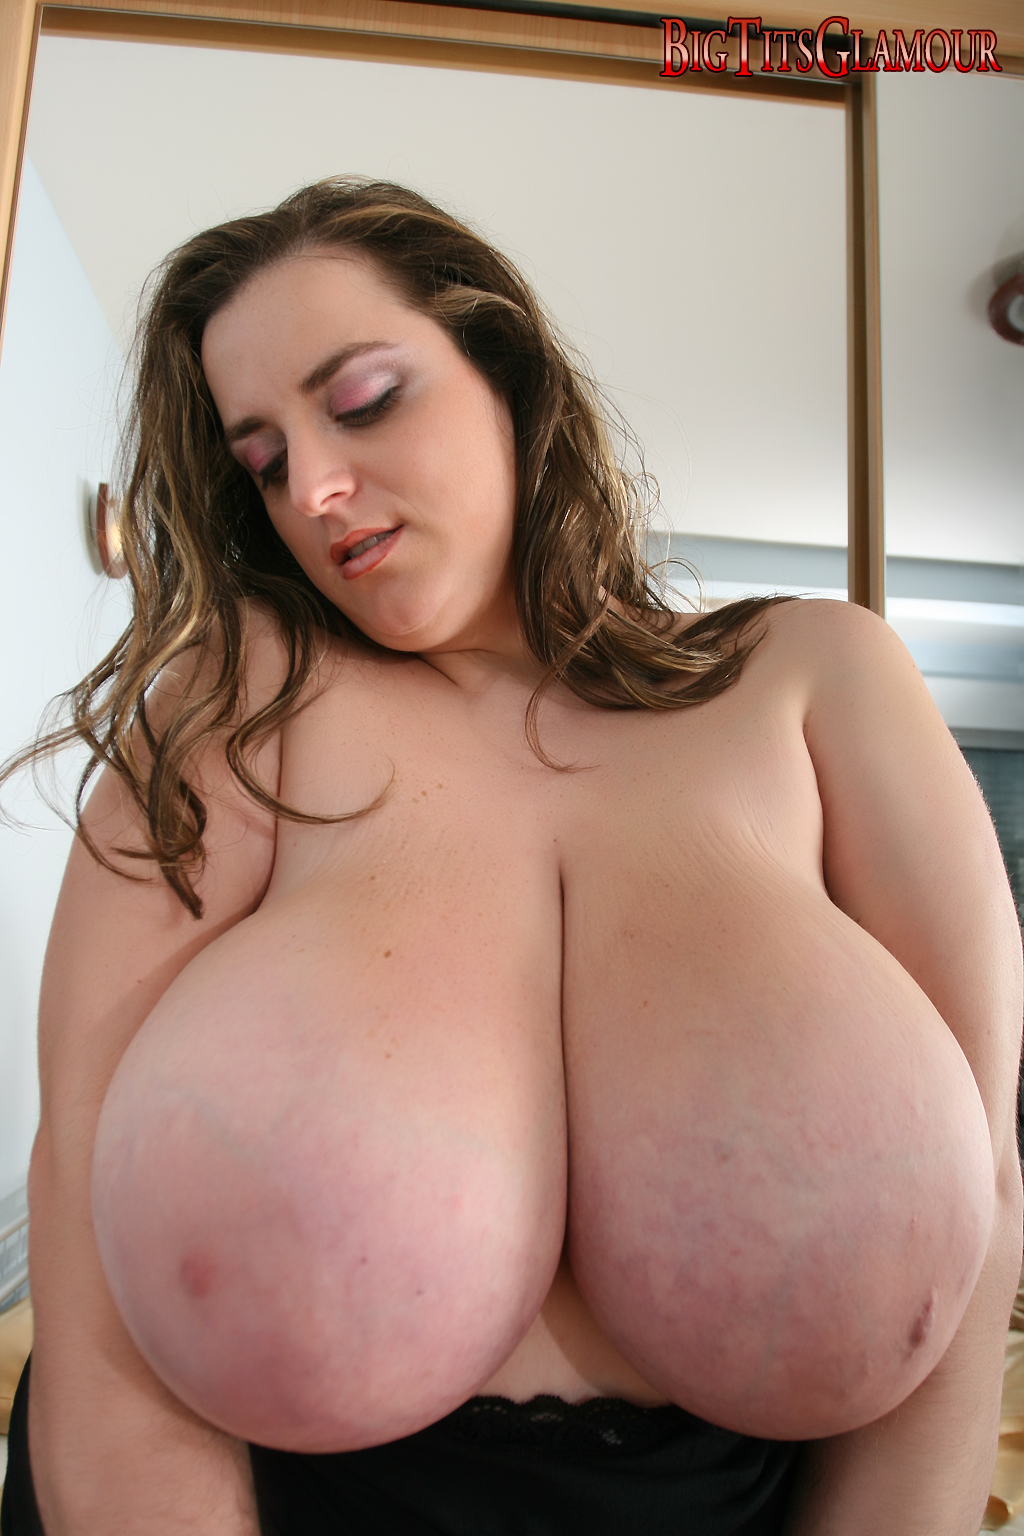 Huge tits sites